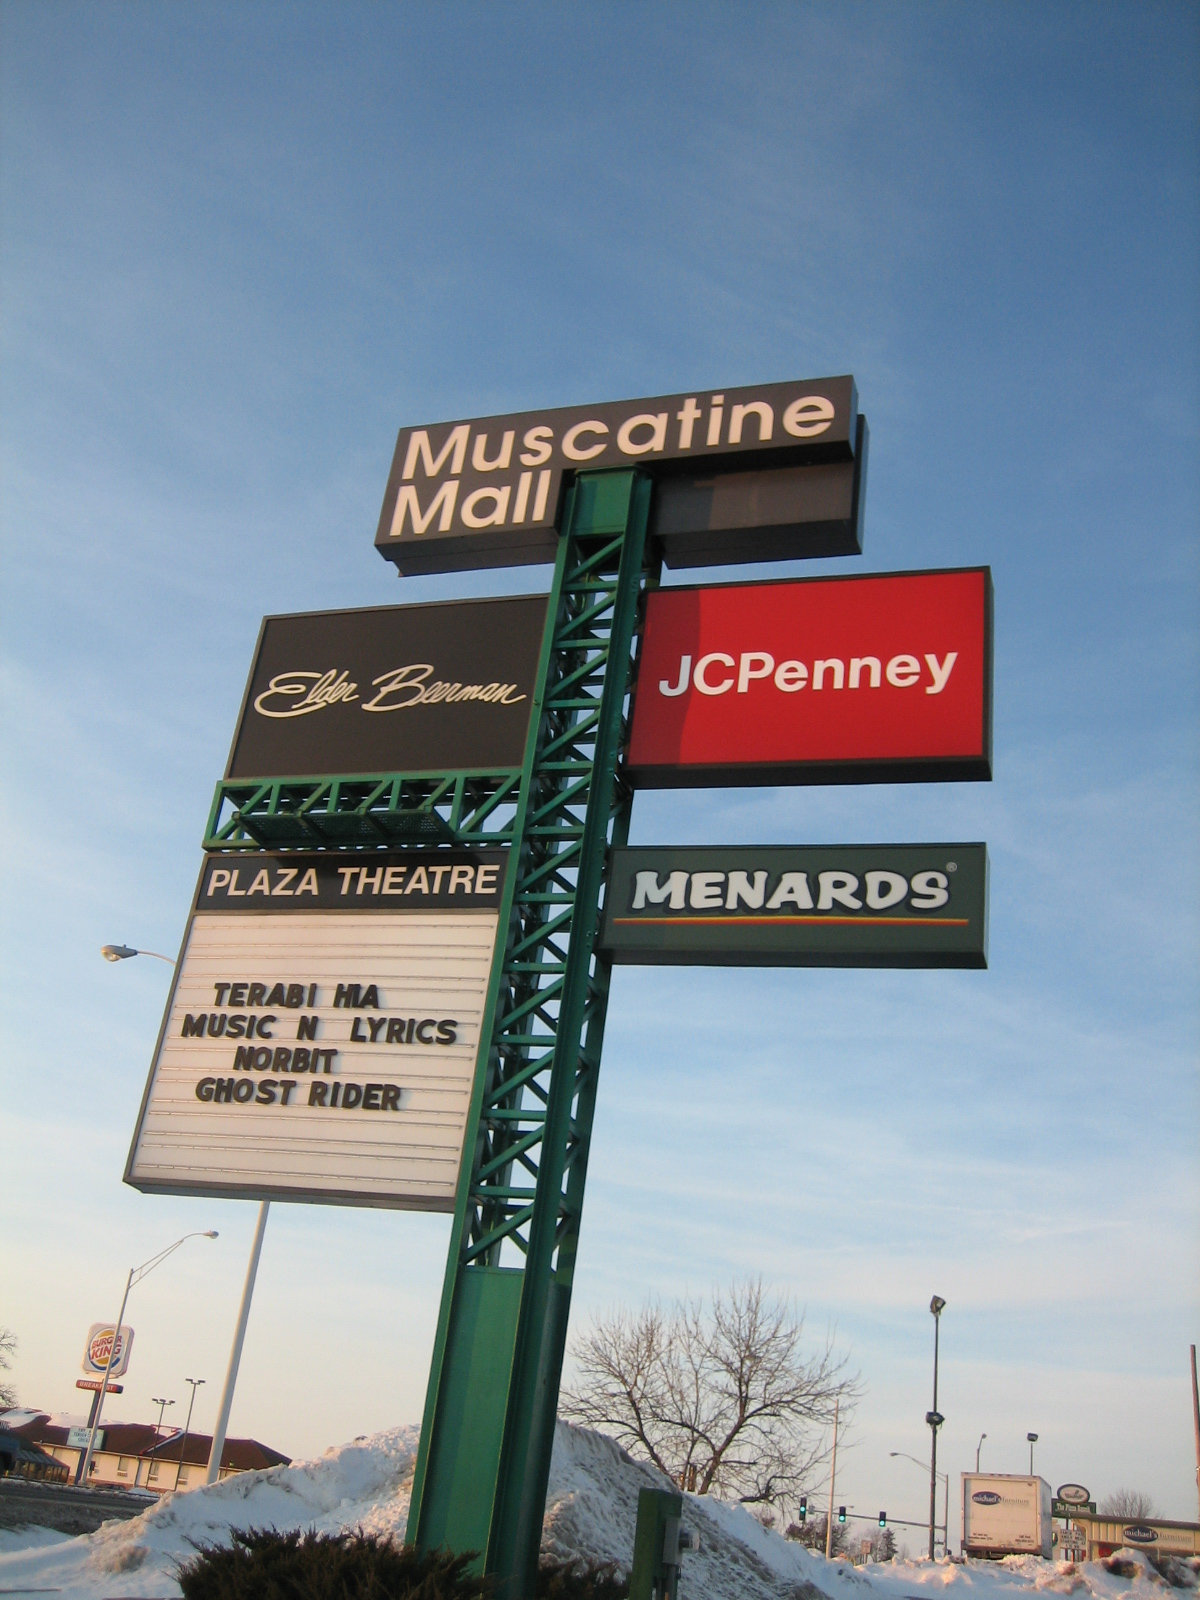 Muscatine Mall pylon in Muscatine, IA